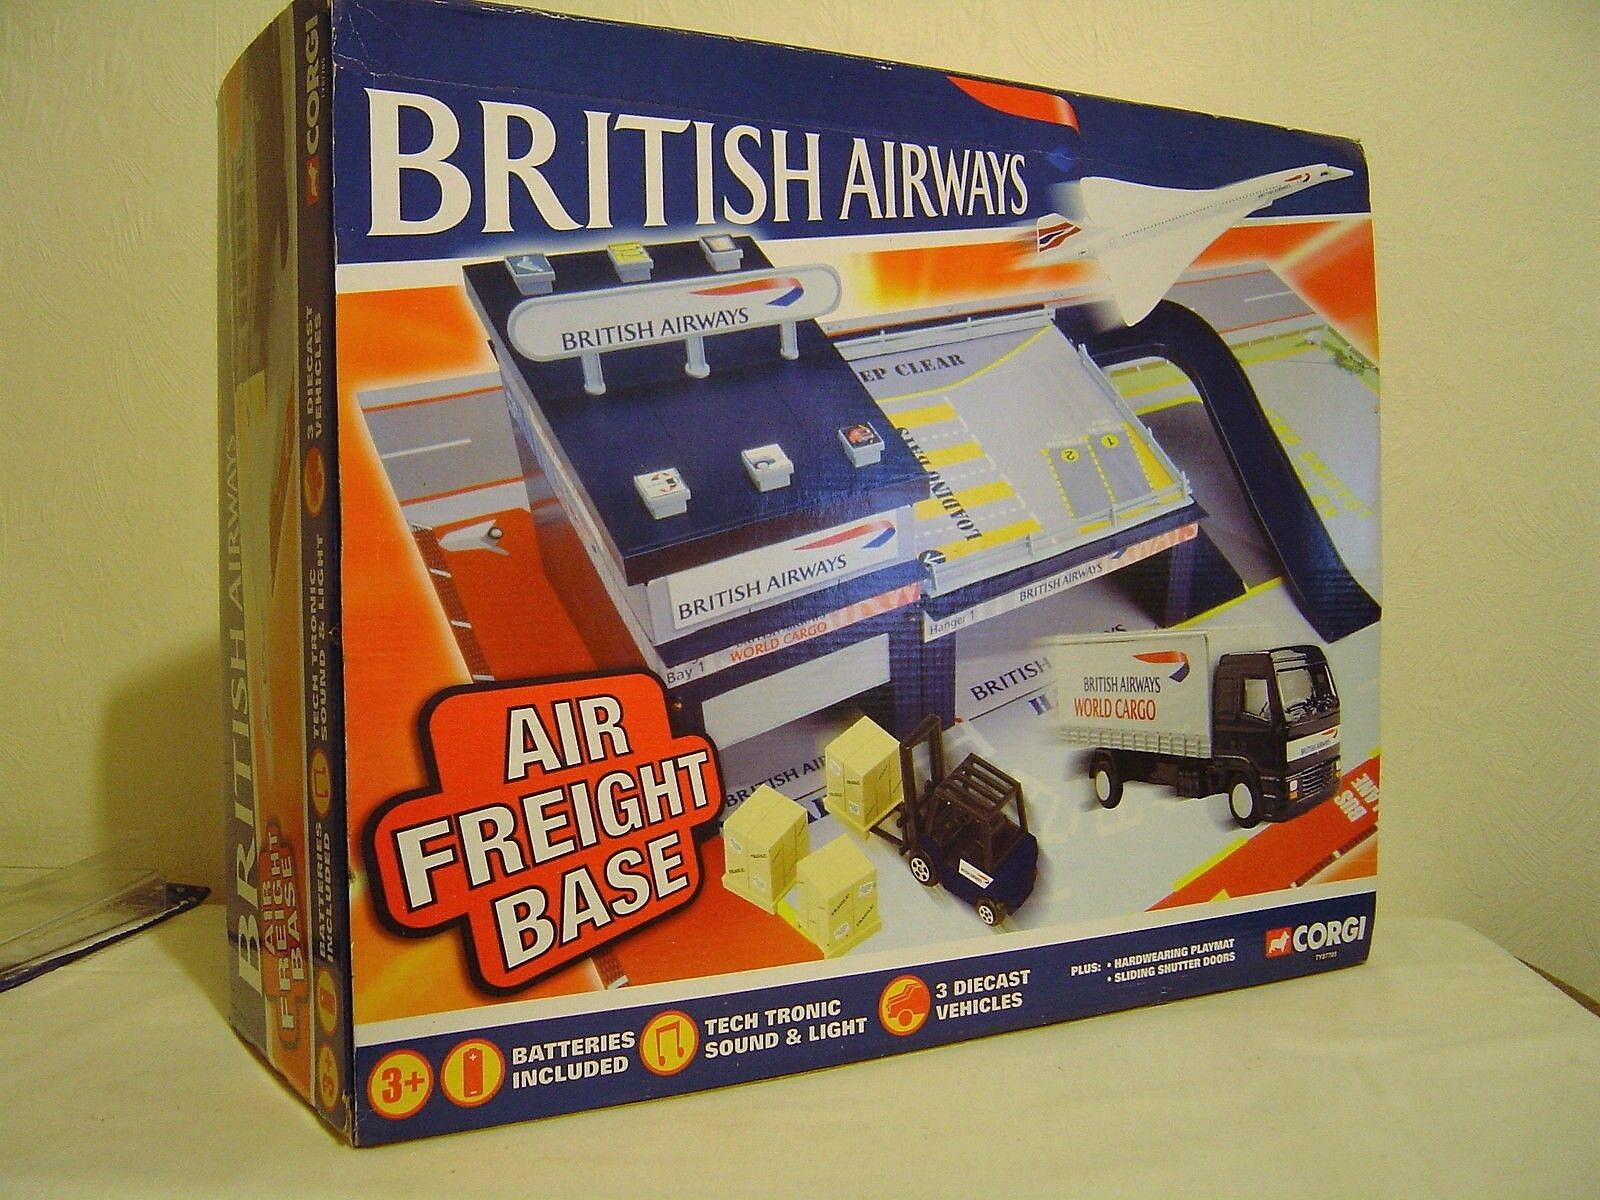 CORGI TY87705, BRITISH AIRWAYS, AIR FREIGHT BASE, PLAYSET